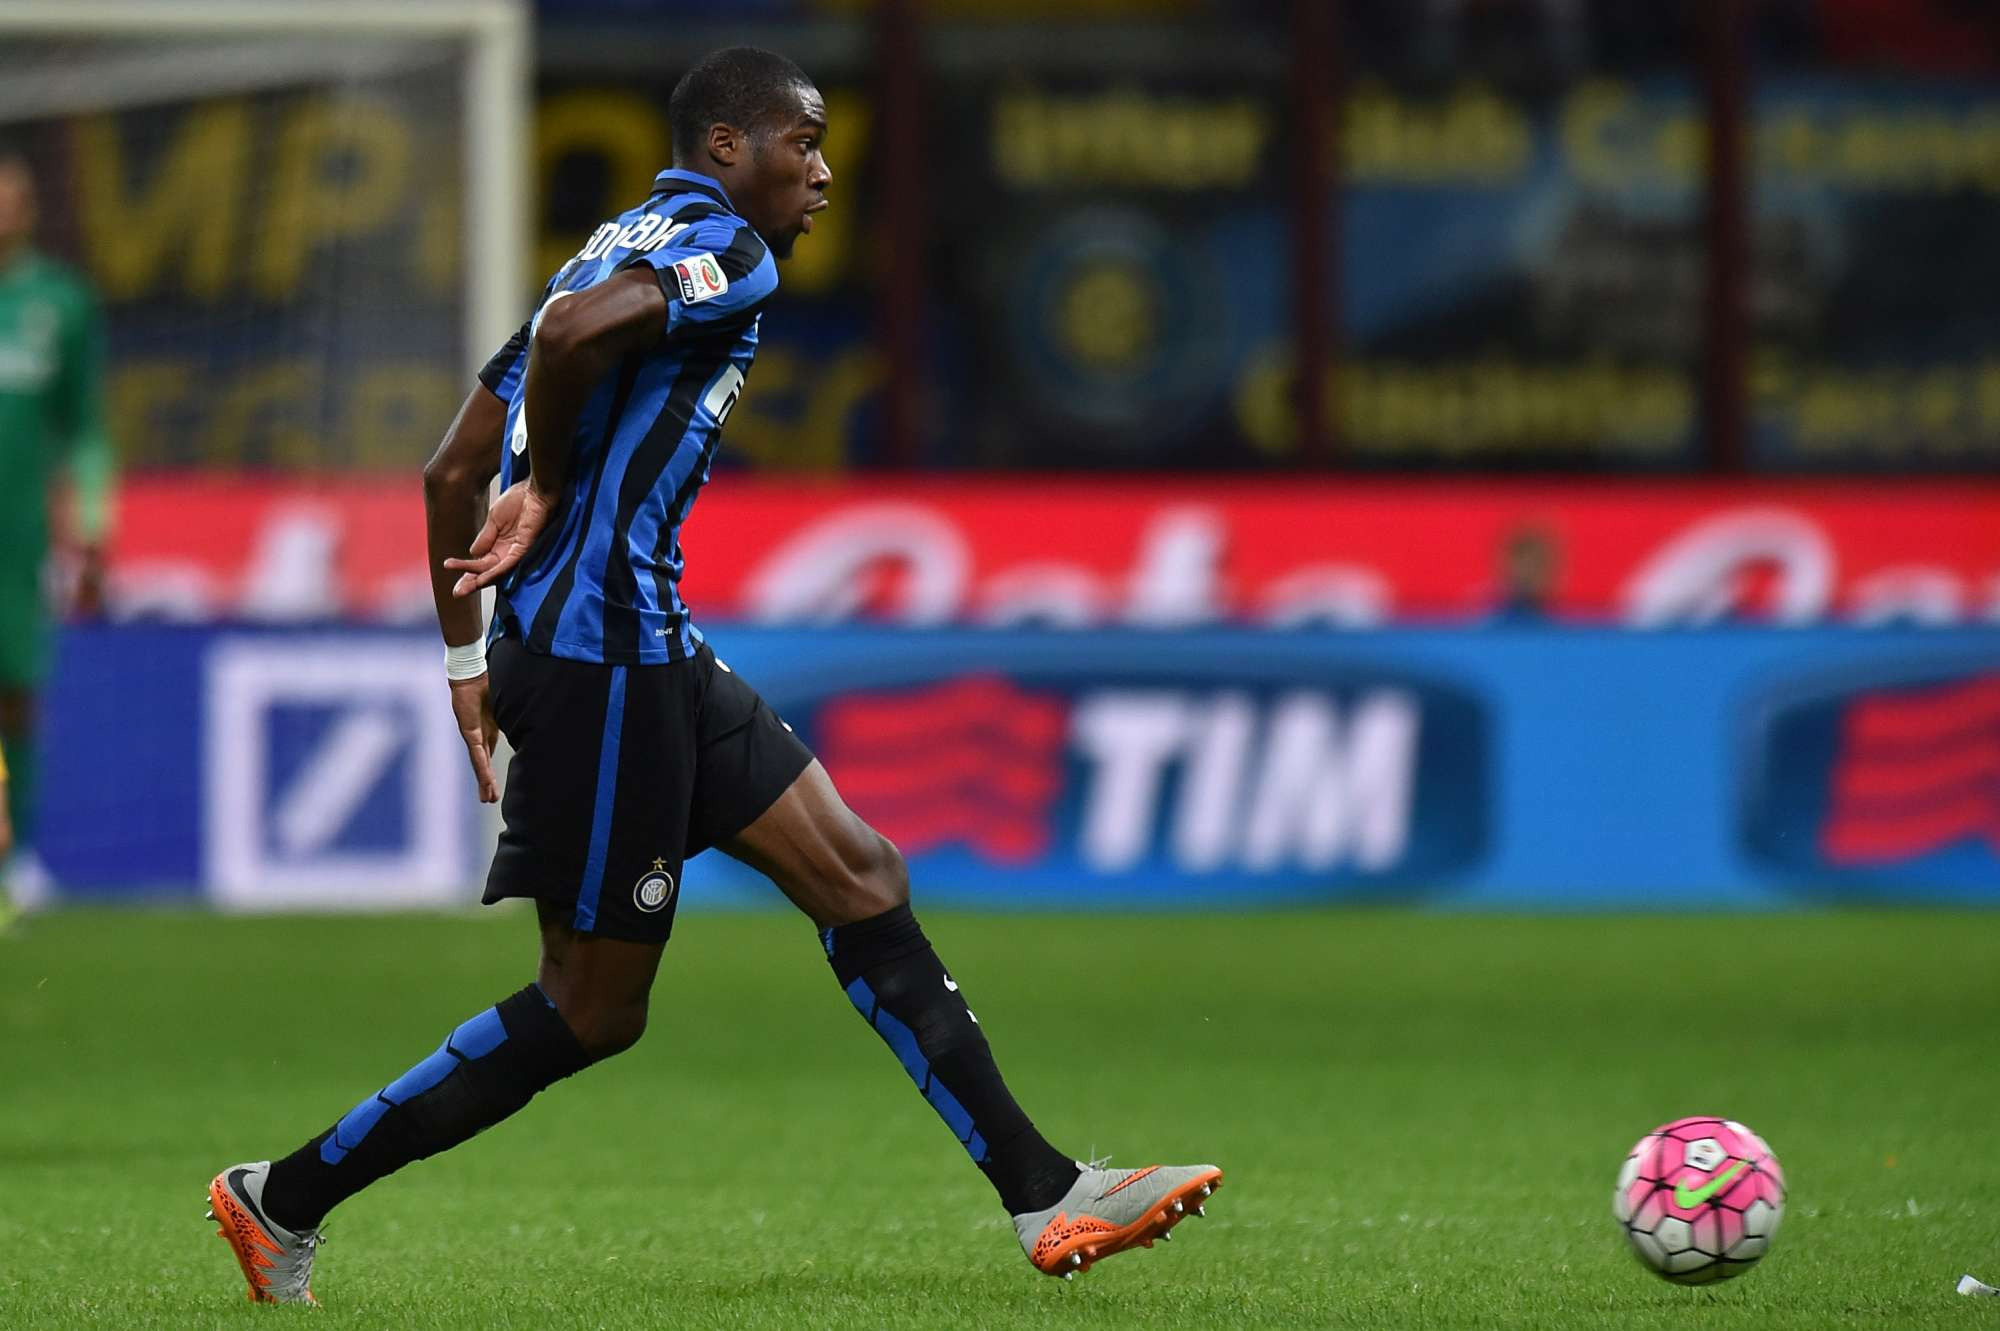 Geoffrey Kondogbia, acquisto di punta dell'Inter in estate